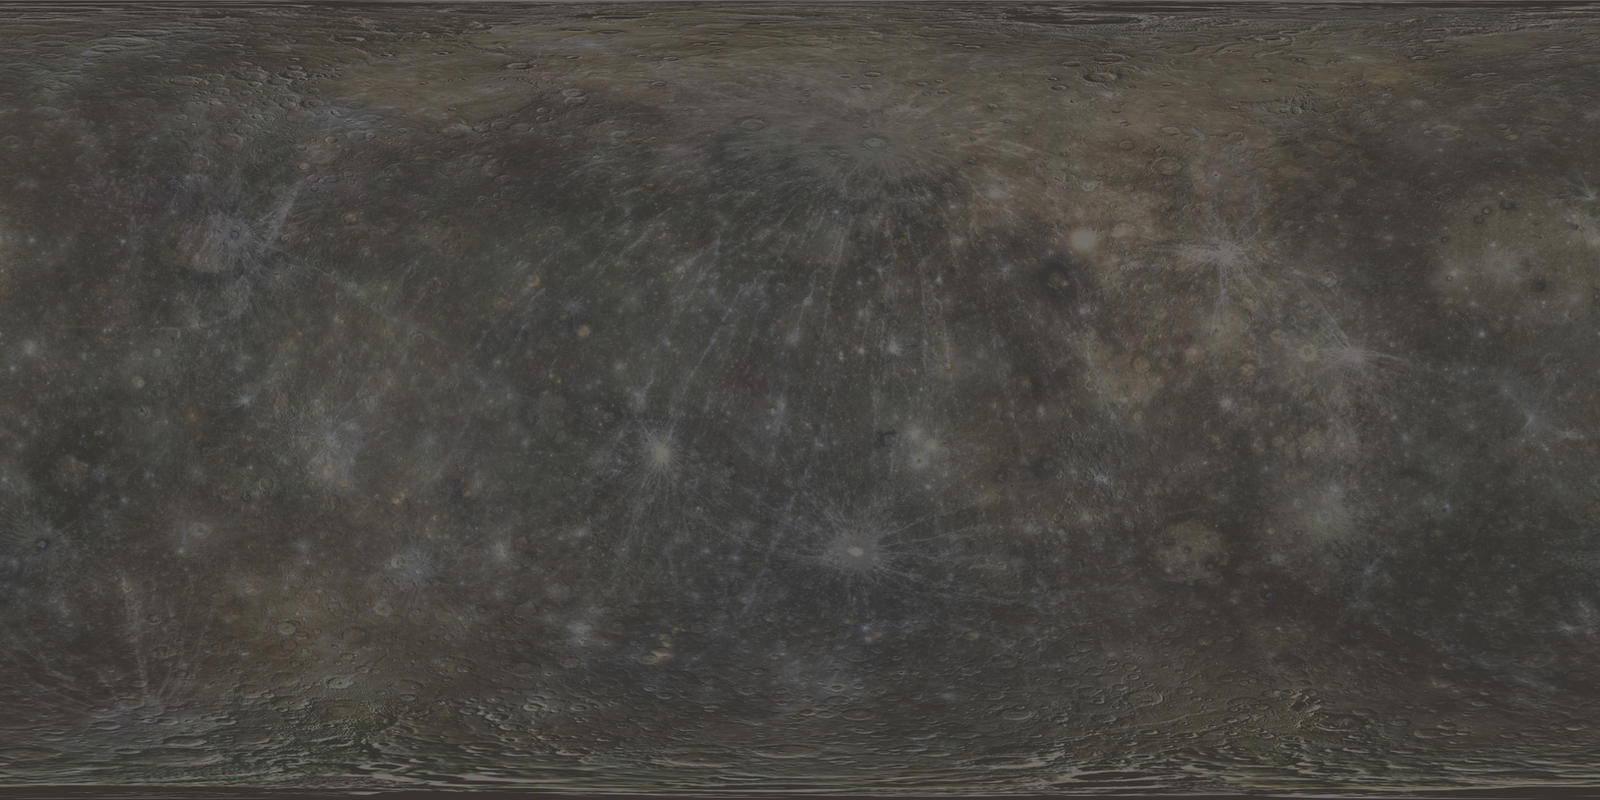 Mrcry Texture Map Related Keywords & Suggestions - Mrcry Texture Map